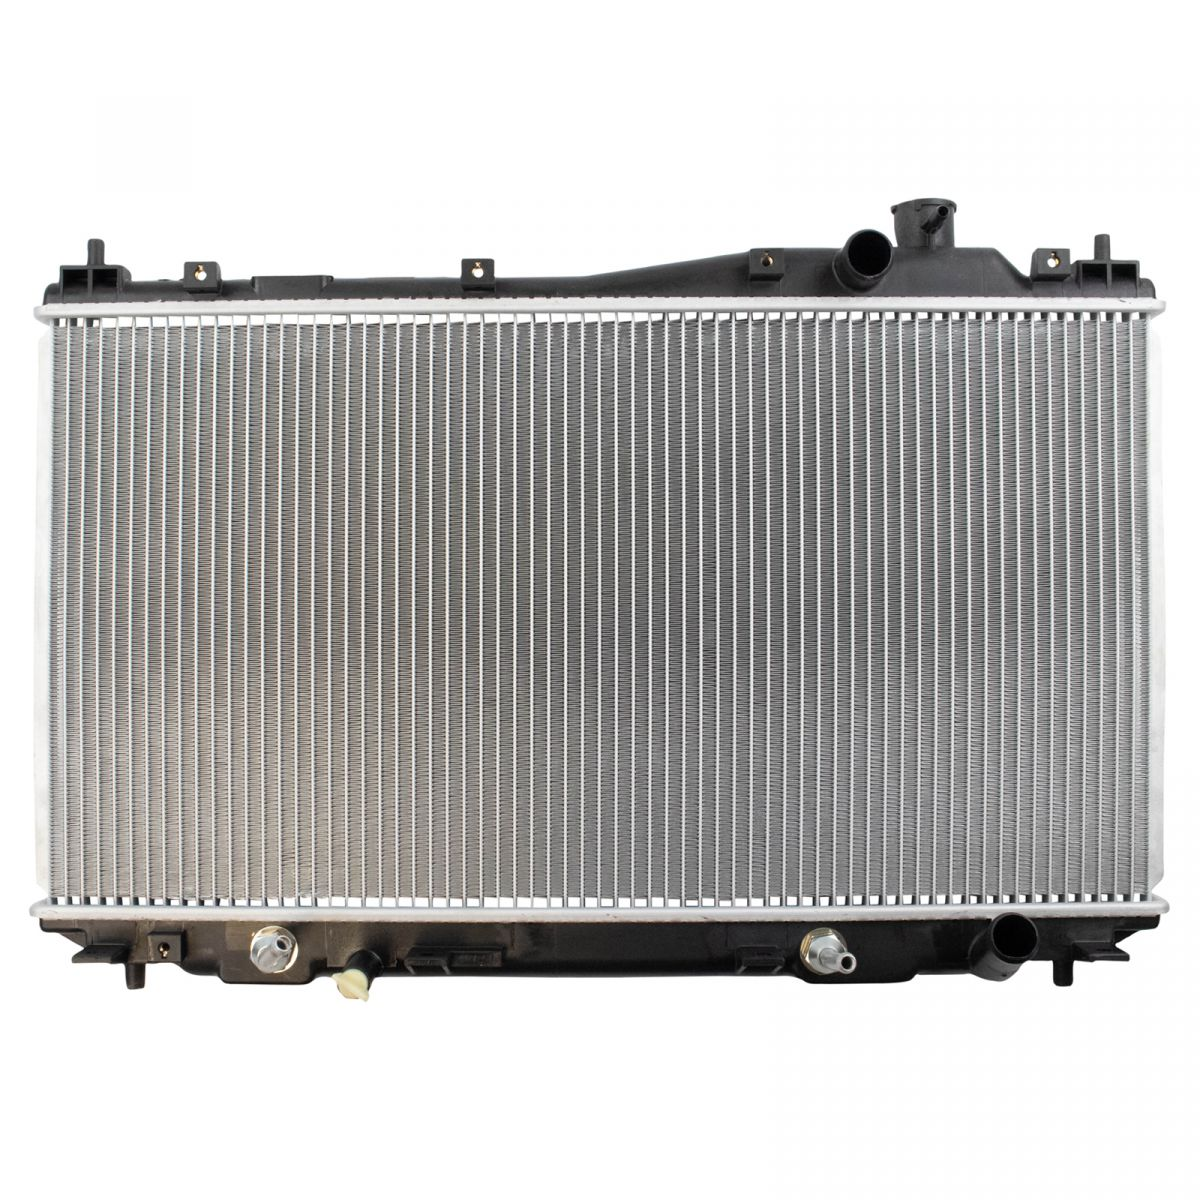 Radiator NEW for 01-05 Honda Civic Acura EL 1.7L